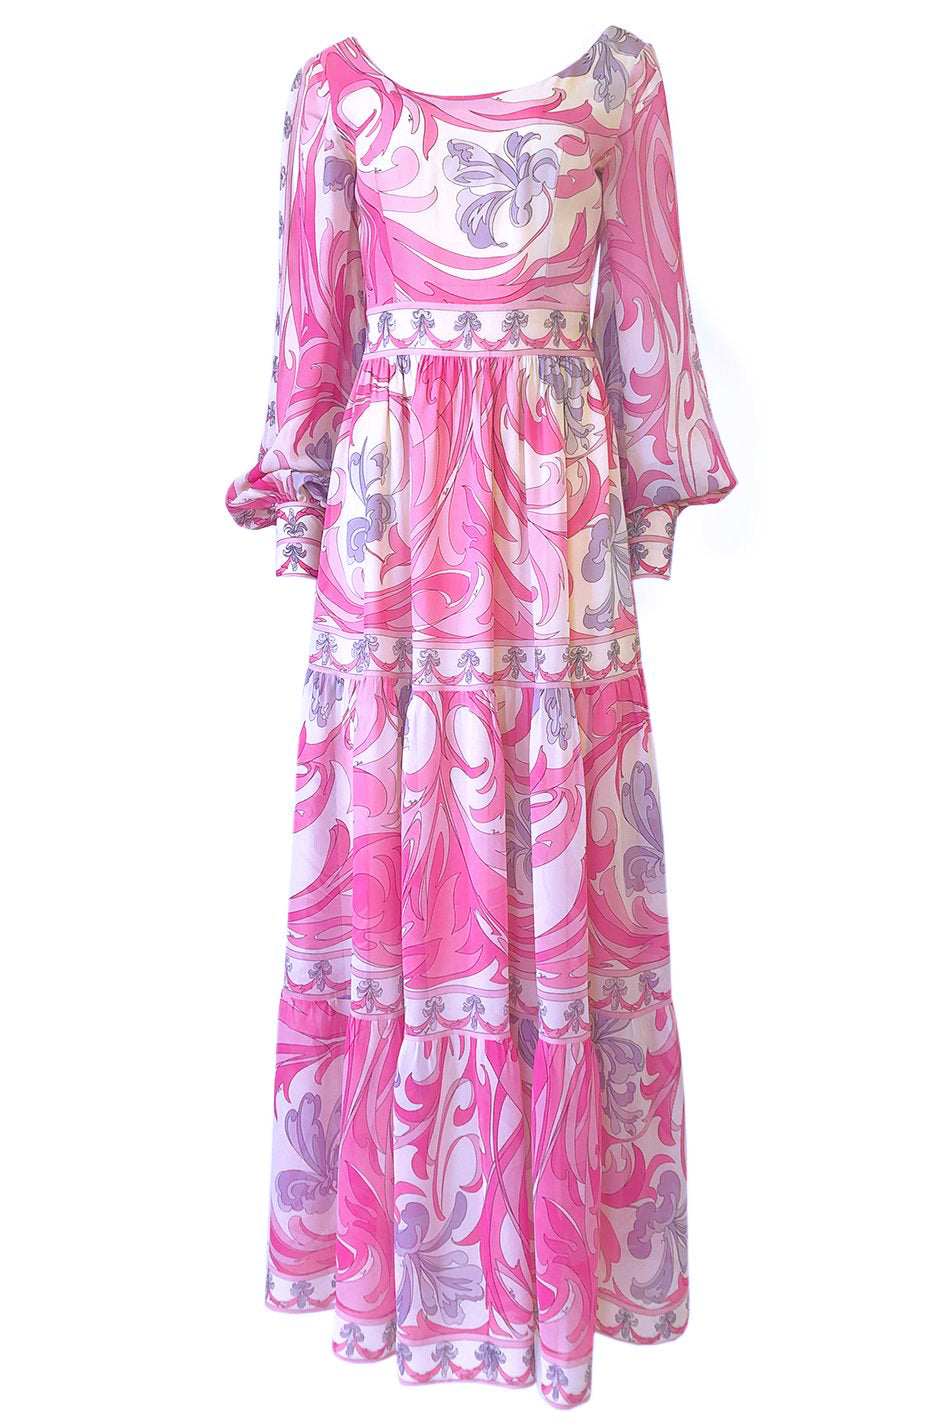 53f9615fcc 1960s Emilio Pucci Pretty Pink Print Silk Chiffon Tiered Skirted Maxi Dress